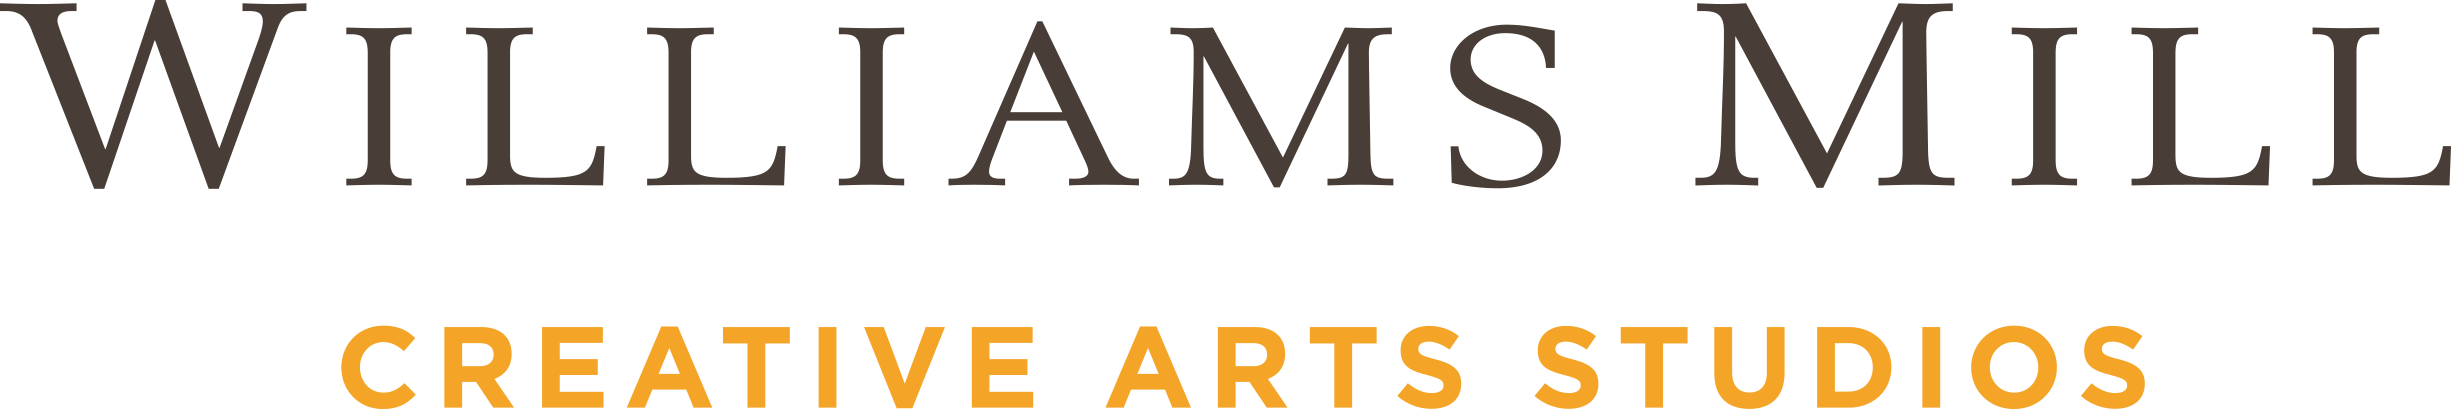 Williams Mill Creative Arts Studios